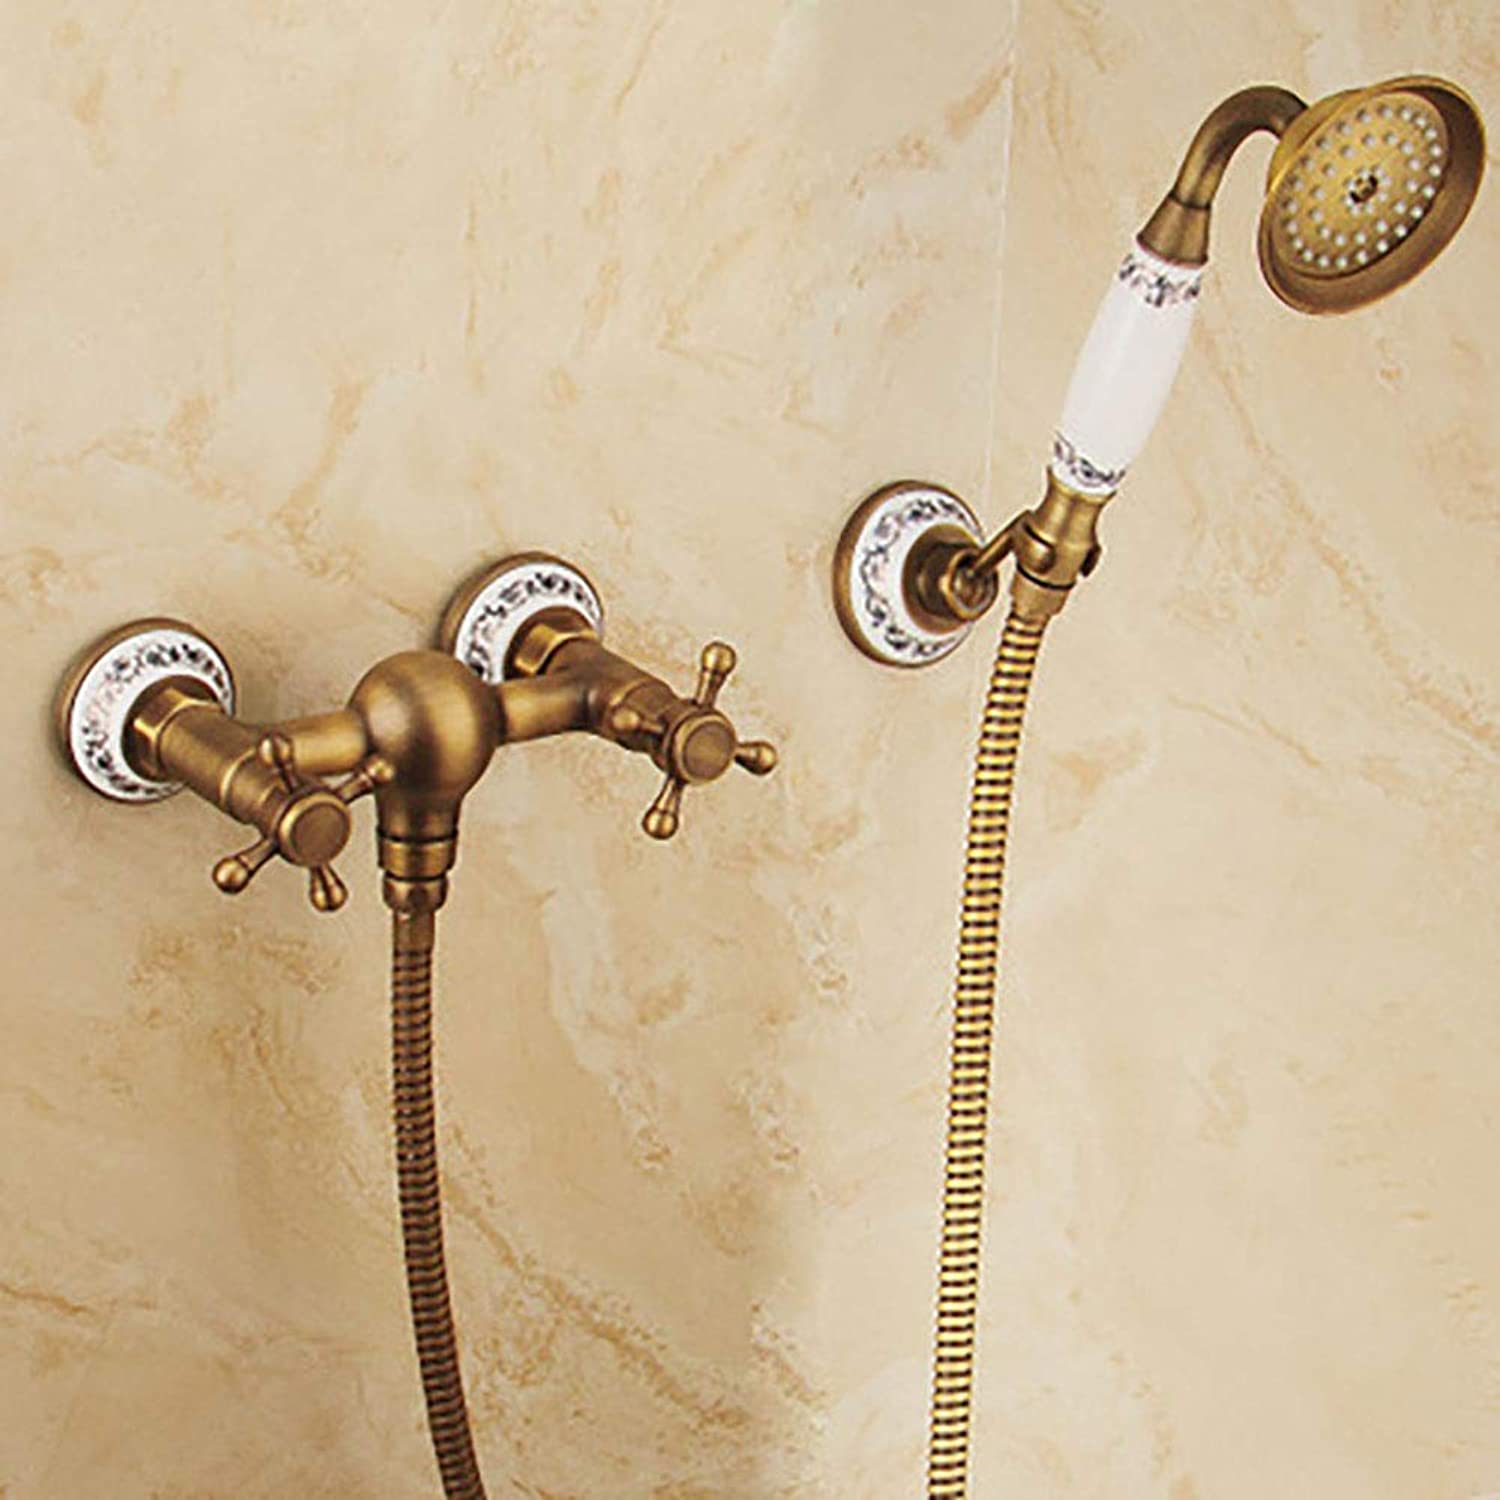 Simple Shower Set Shower hot and Cold Separation, Simple All-Copper Wall-Mounted Handheld golden Shower with fine Accessories-yellow3